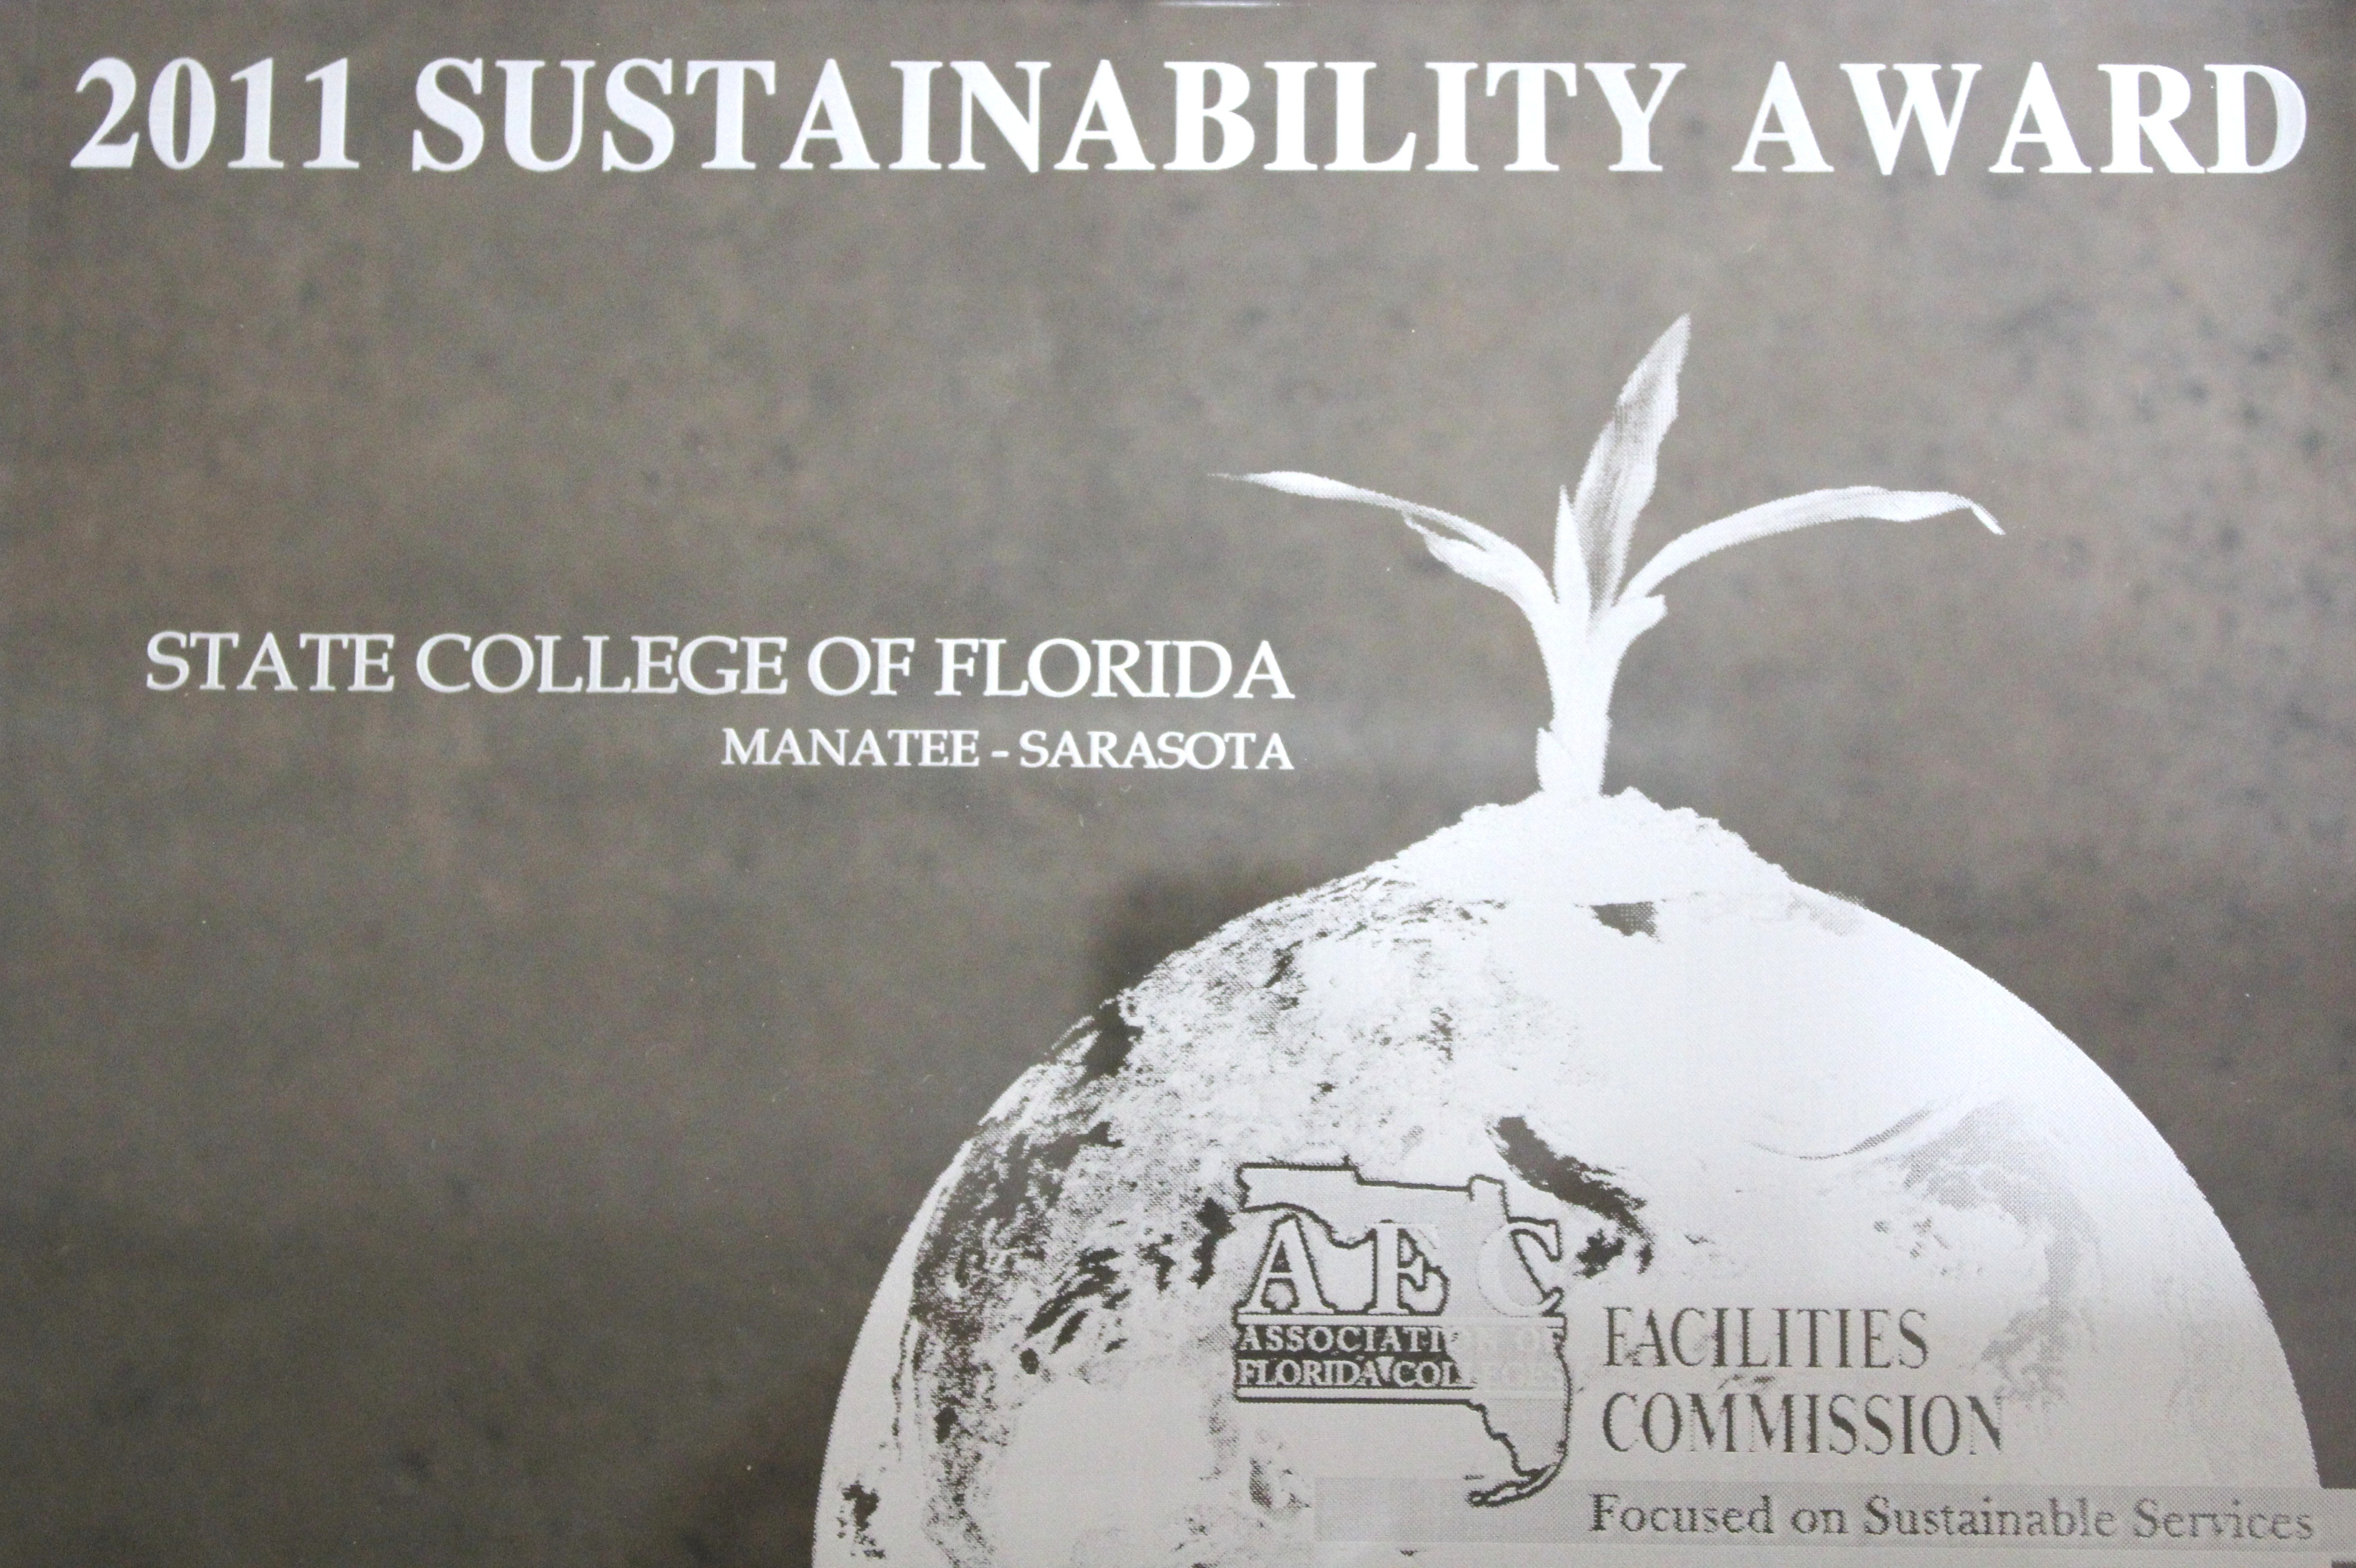 2011 Sustainability Award